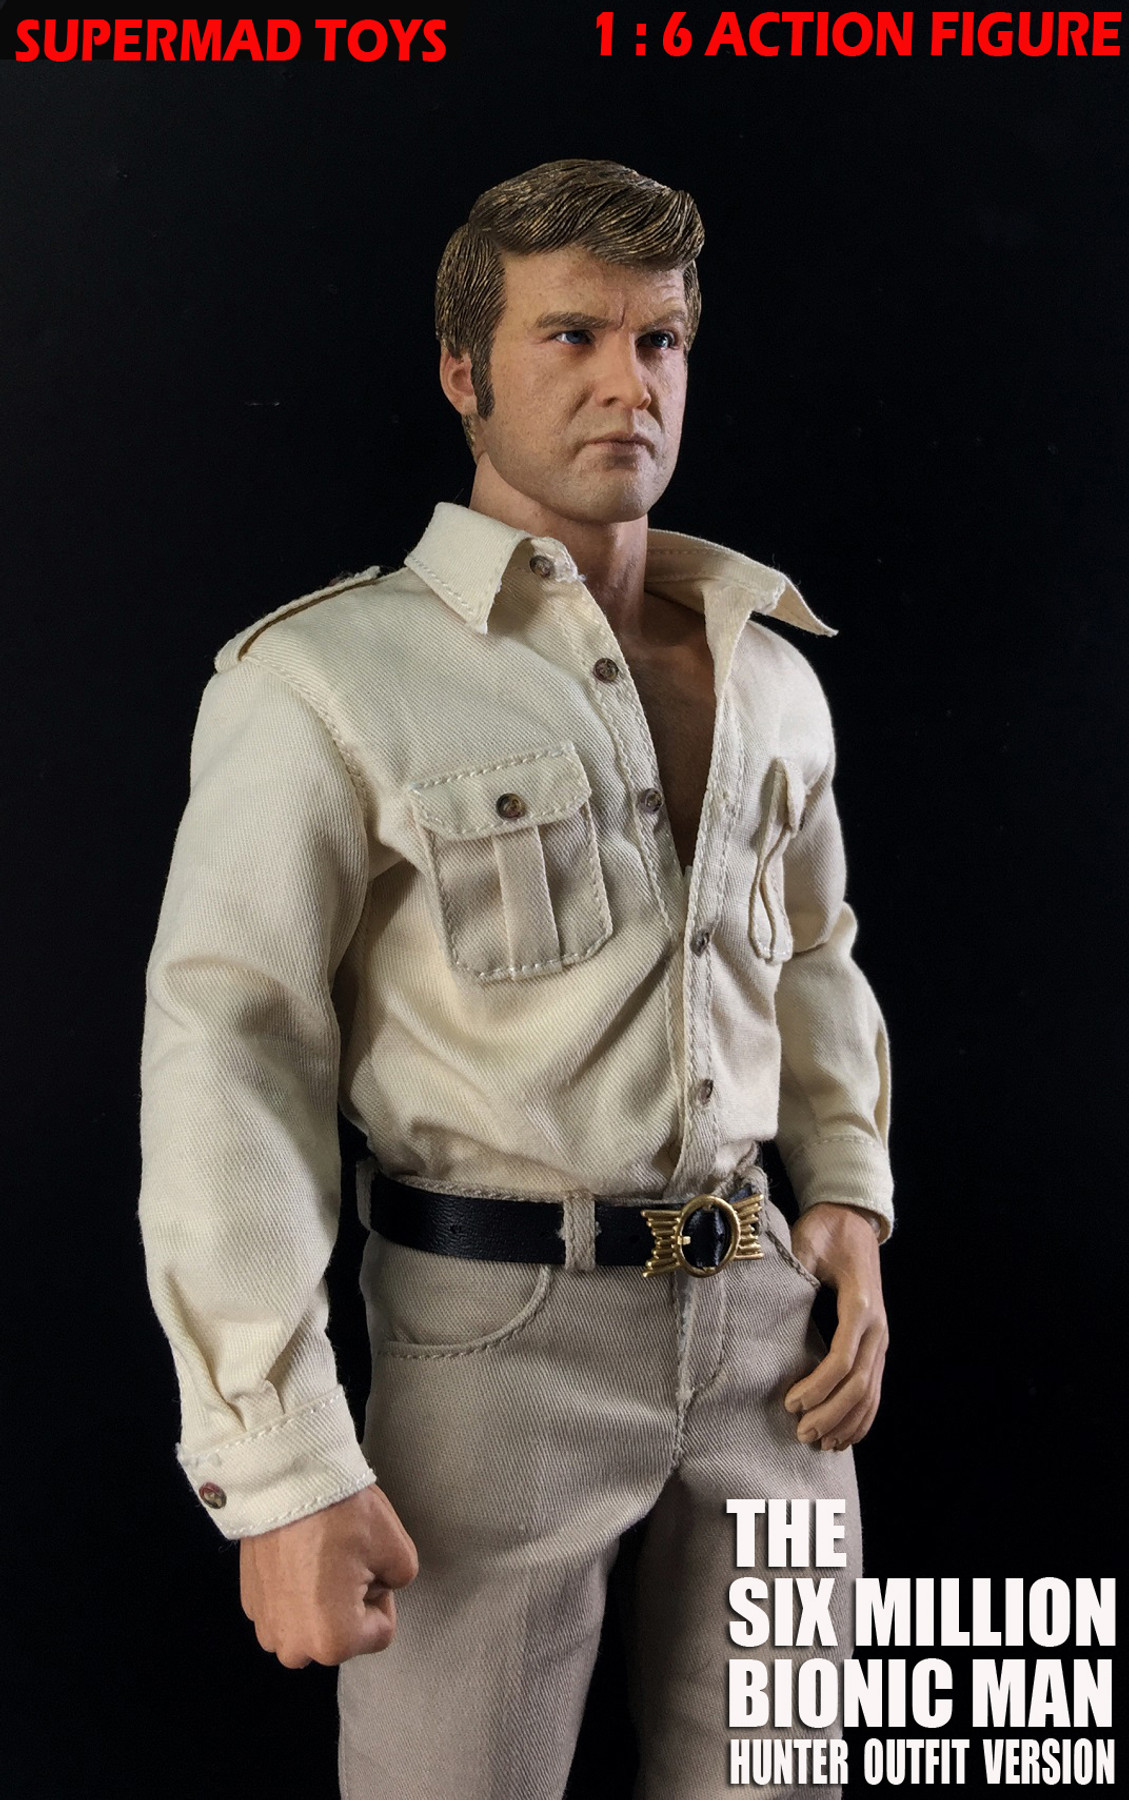 SUPERMAD TOYS 1//6 The Six Million Bionic Man Hunter Outfit Version Action Figure